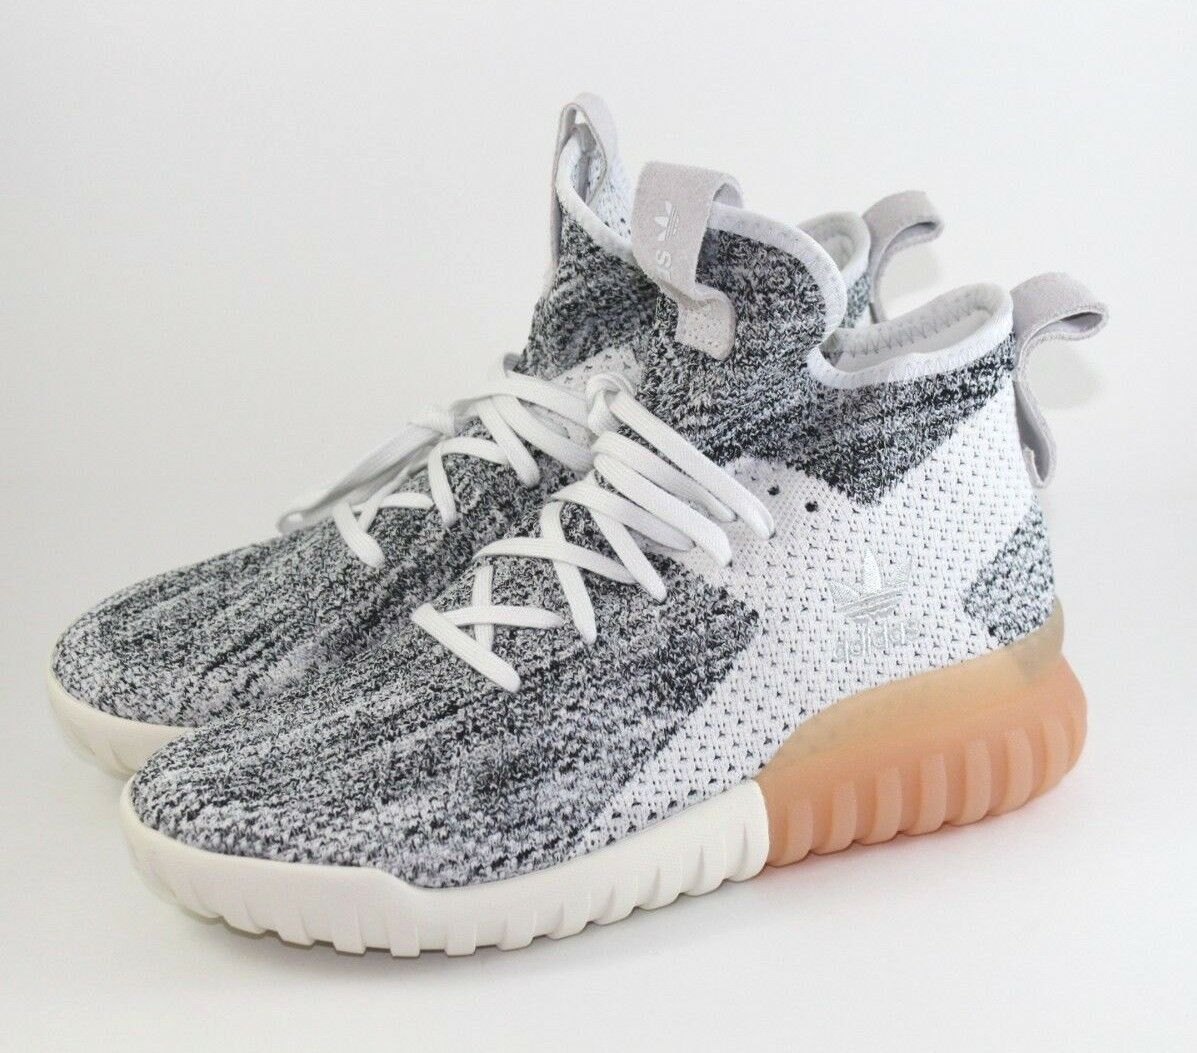 Adidas Tubular X Pk Primeknit Fashion Crystal Sneakers Crystal Fashion Wht Grey BY3146 Size 8.5 354d49